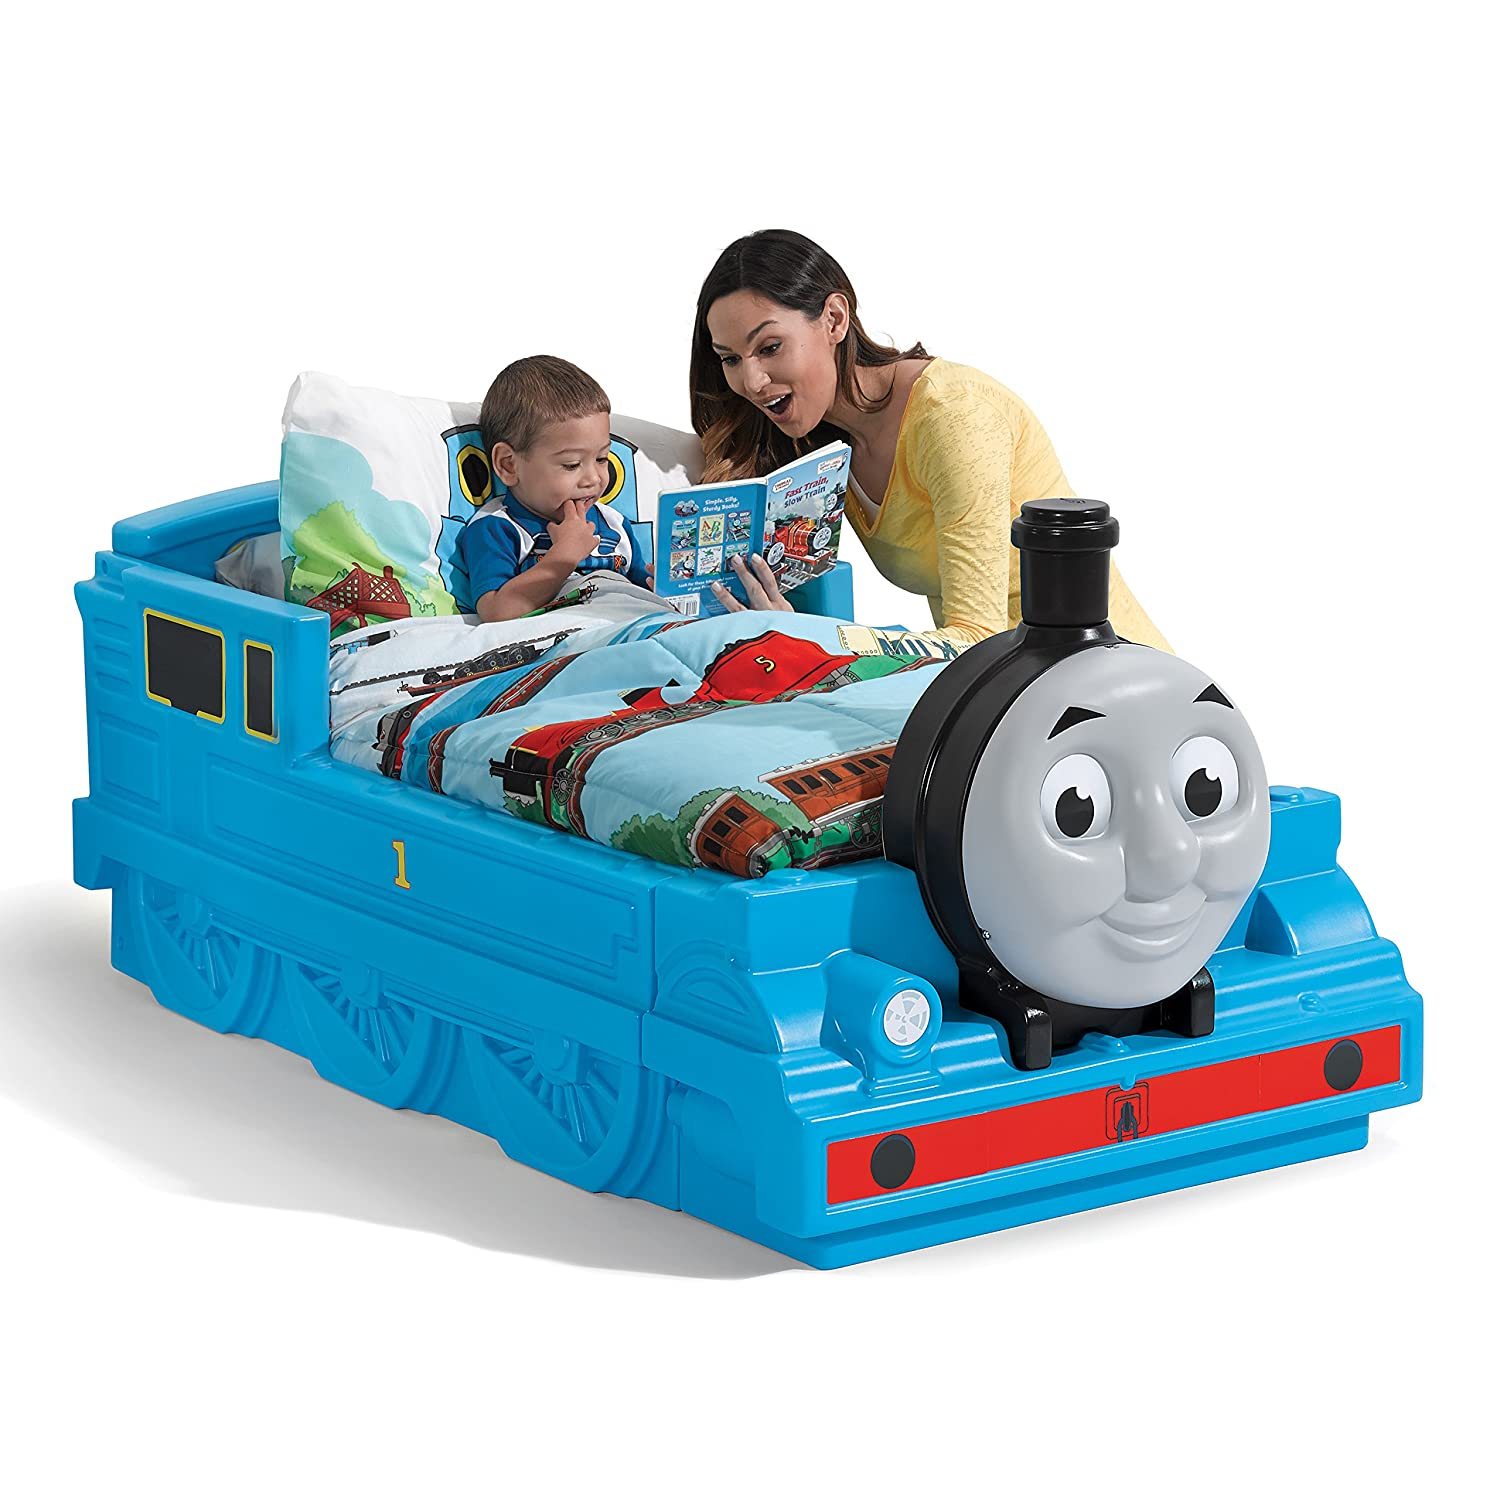 Step2 Thomas The Tank Engine Toddler Bed Step 2 - Replenishment 8450KR